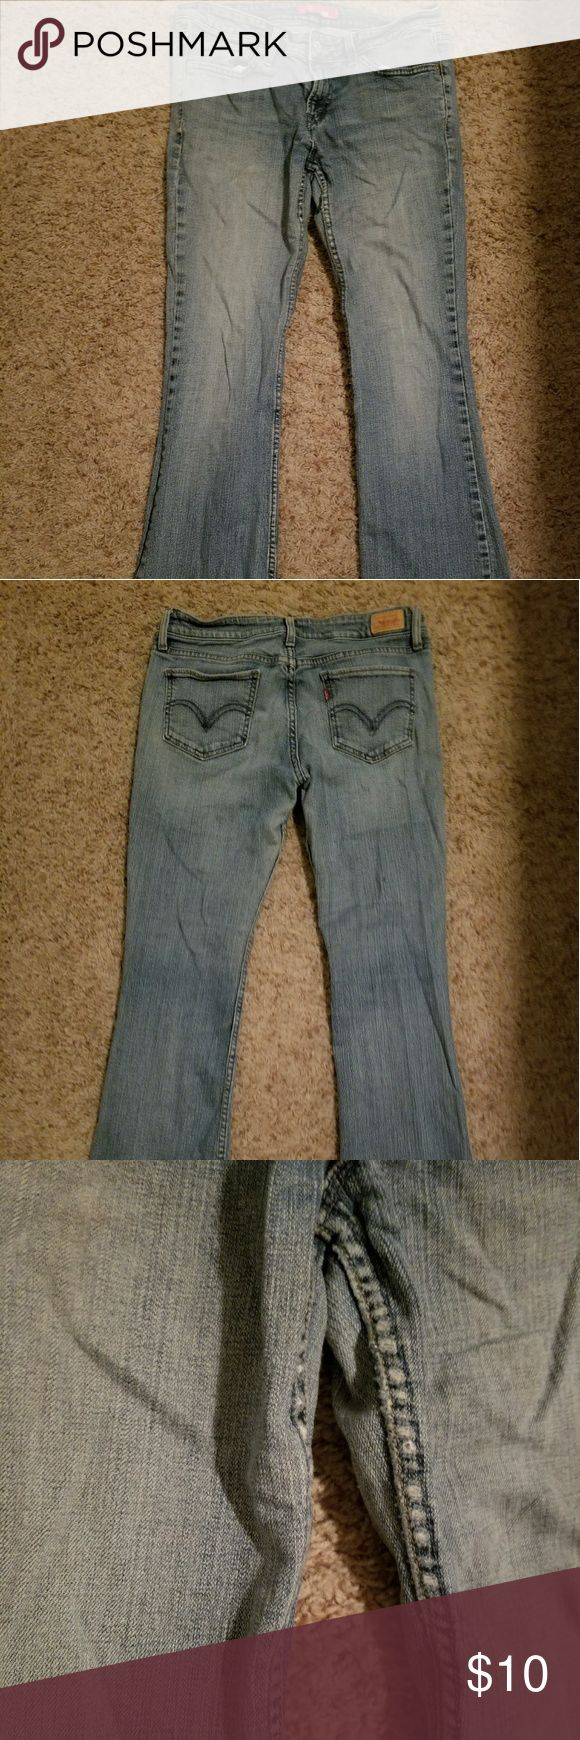 Superlow Bootcut Levi Jeans These have some wear and tear as shown in the 3rd picture it mainly just looks like a small bit of discoloration but price reflects the wear. Size 9/medium. Levi's Jeans Boot Cut